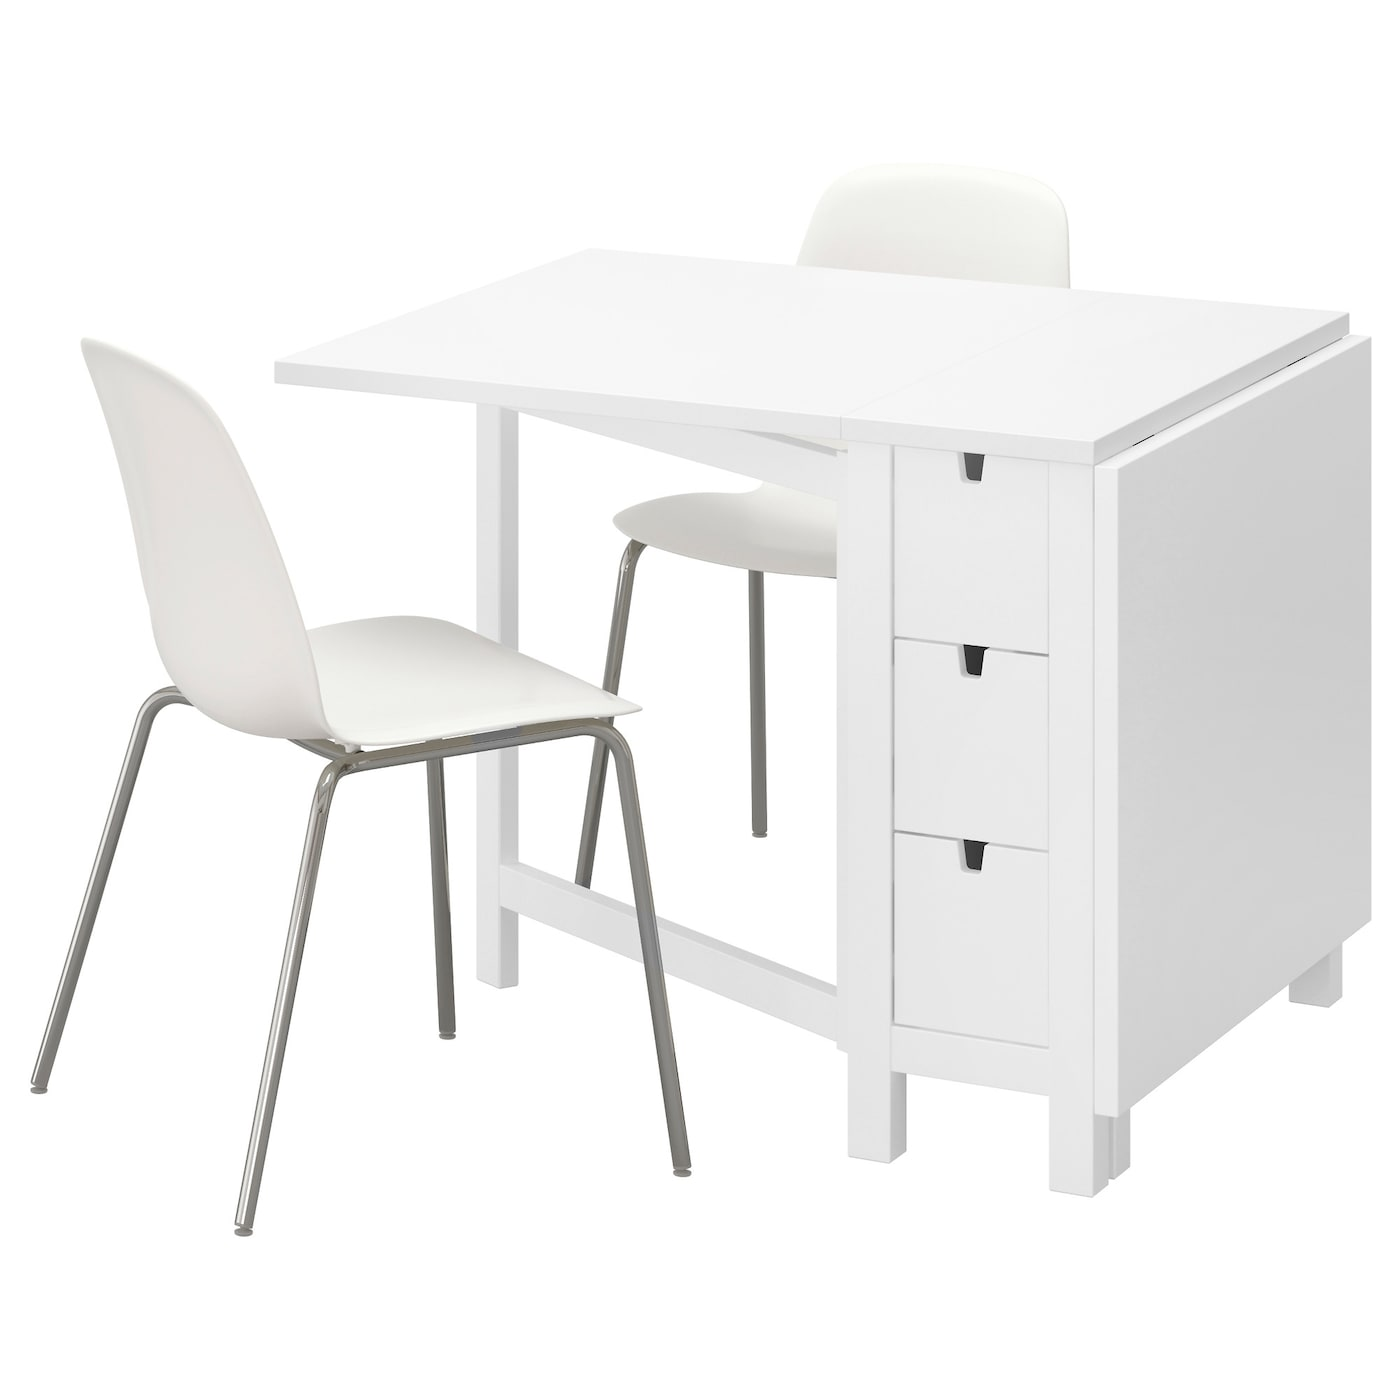 Norden leifarne table and 2 chairs white white chrome for Table chaise ikea